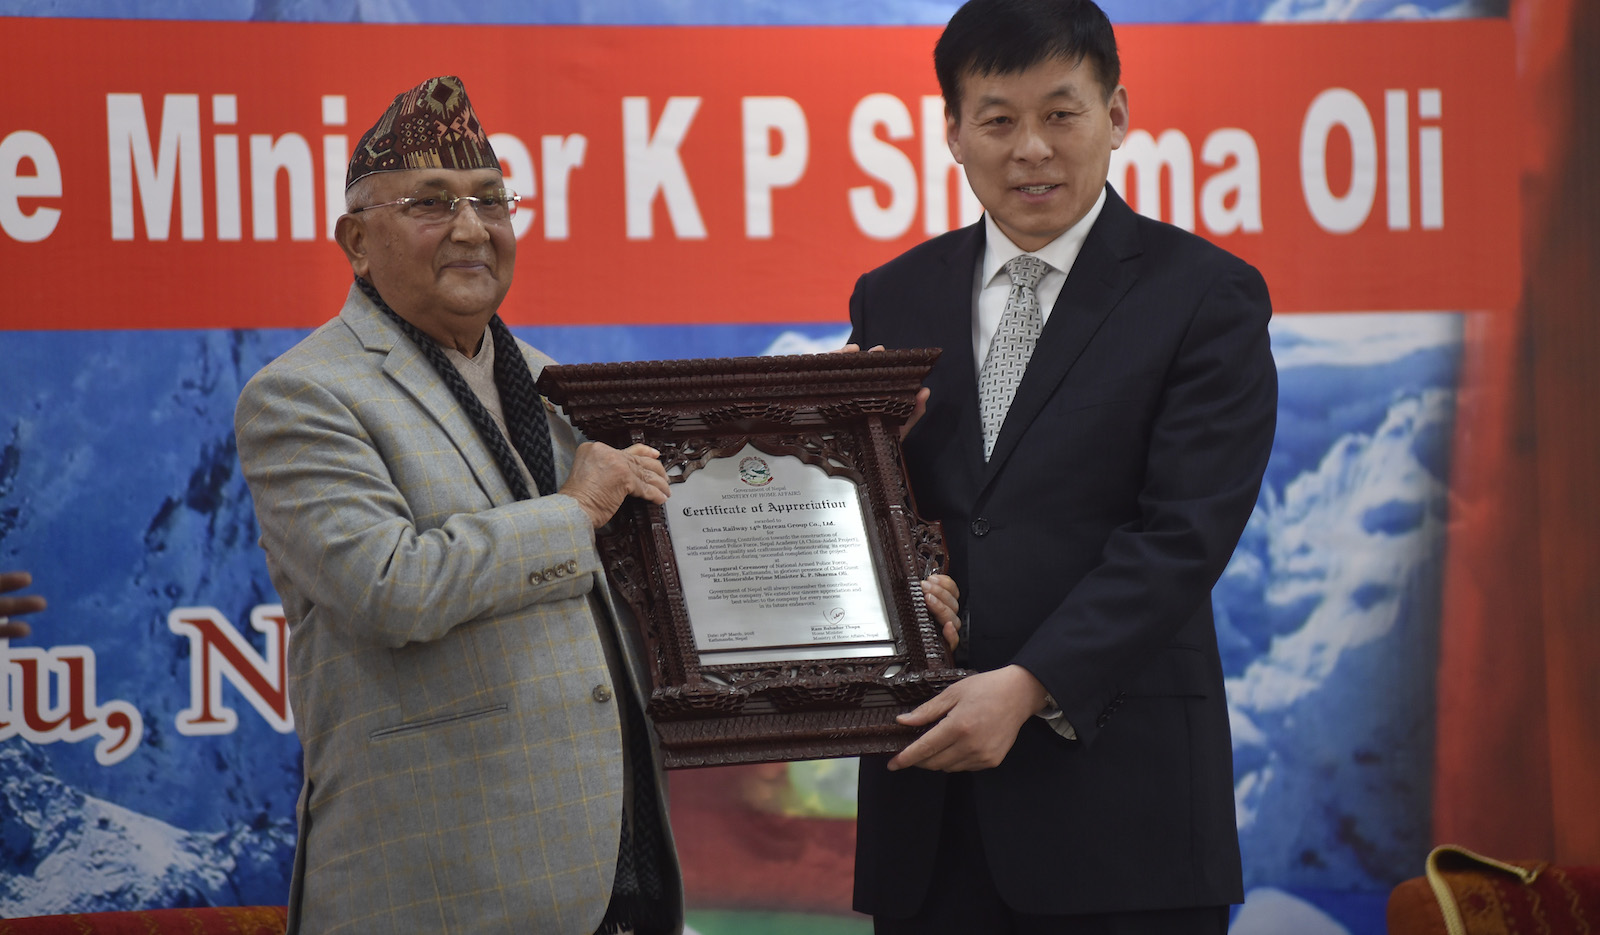 Prime Minister of Nepal KP Sharma Oli giving Certificate of Appreciation to the member of China Railway 14th Bureau Group (Photo: Photo by Narayan Maharjan via Getty)